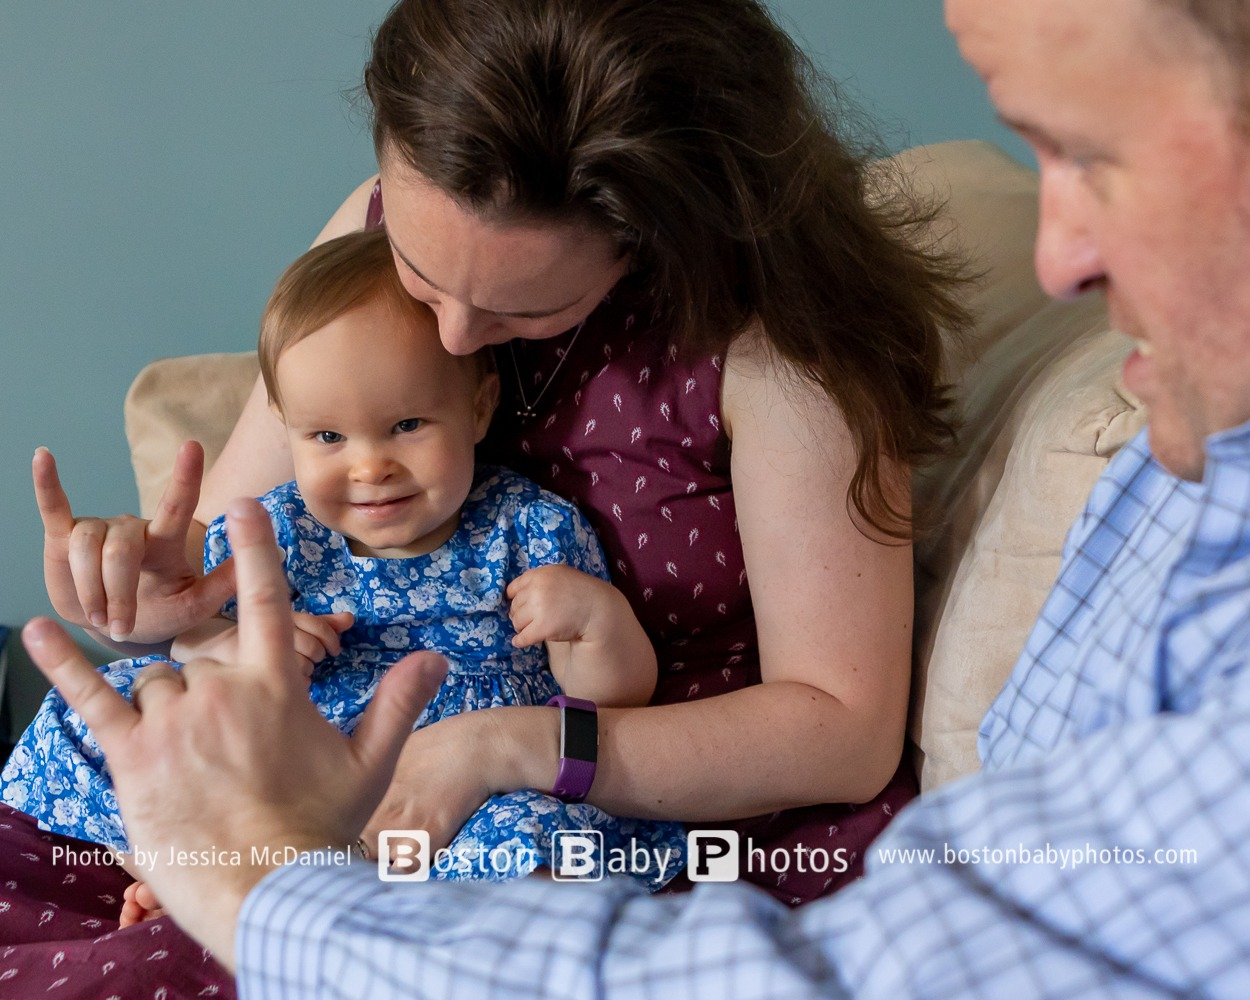 North End One Year Old: Sign Language and A Guardian Angel